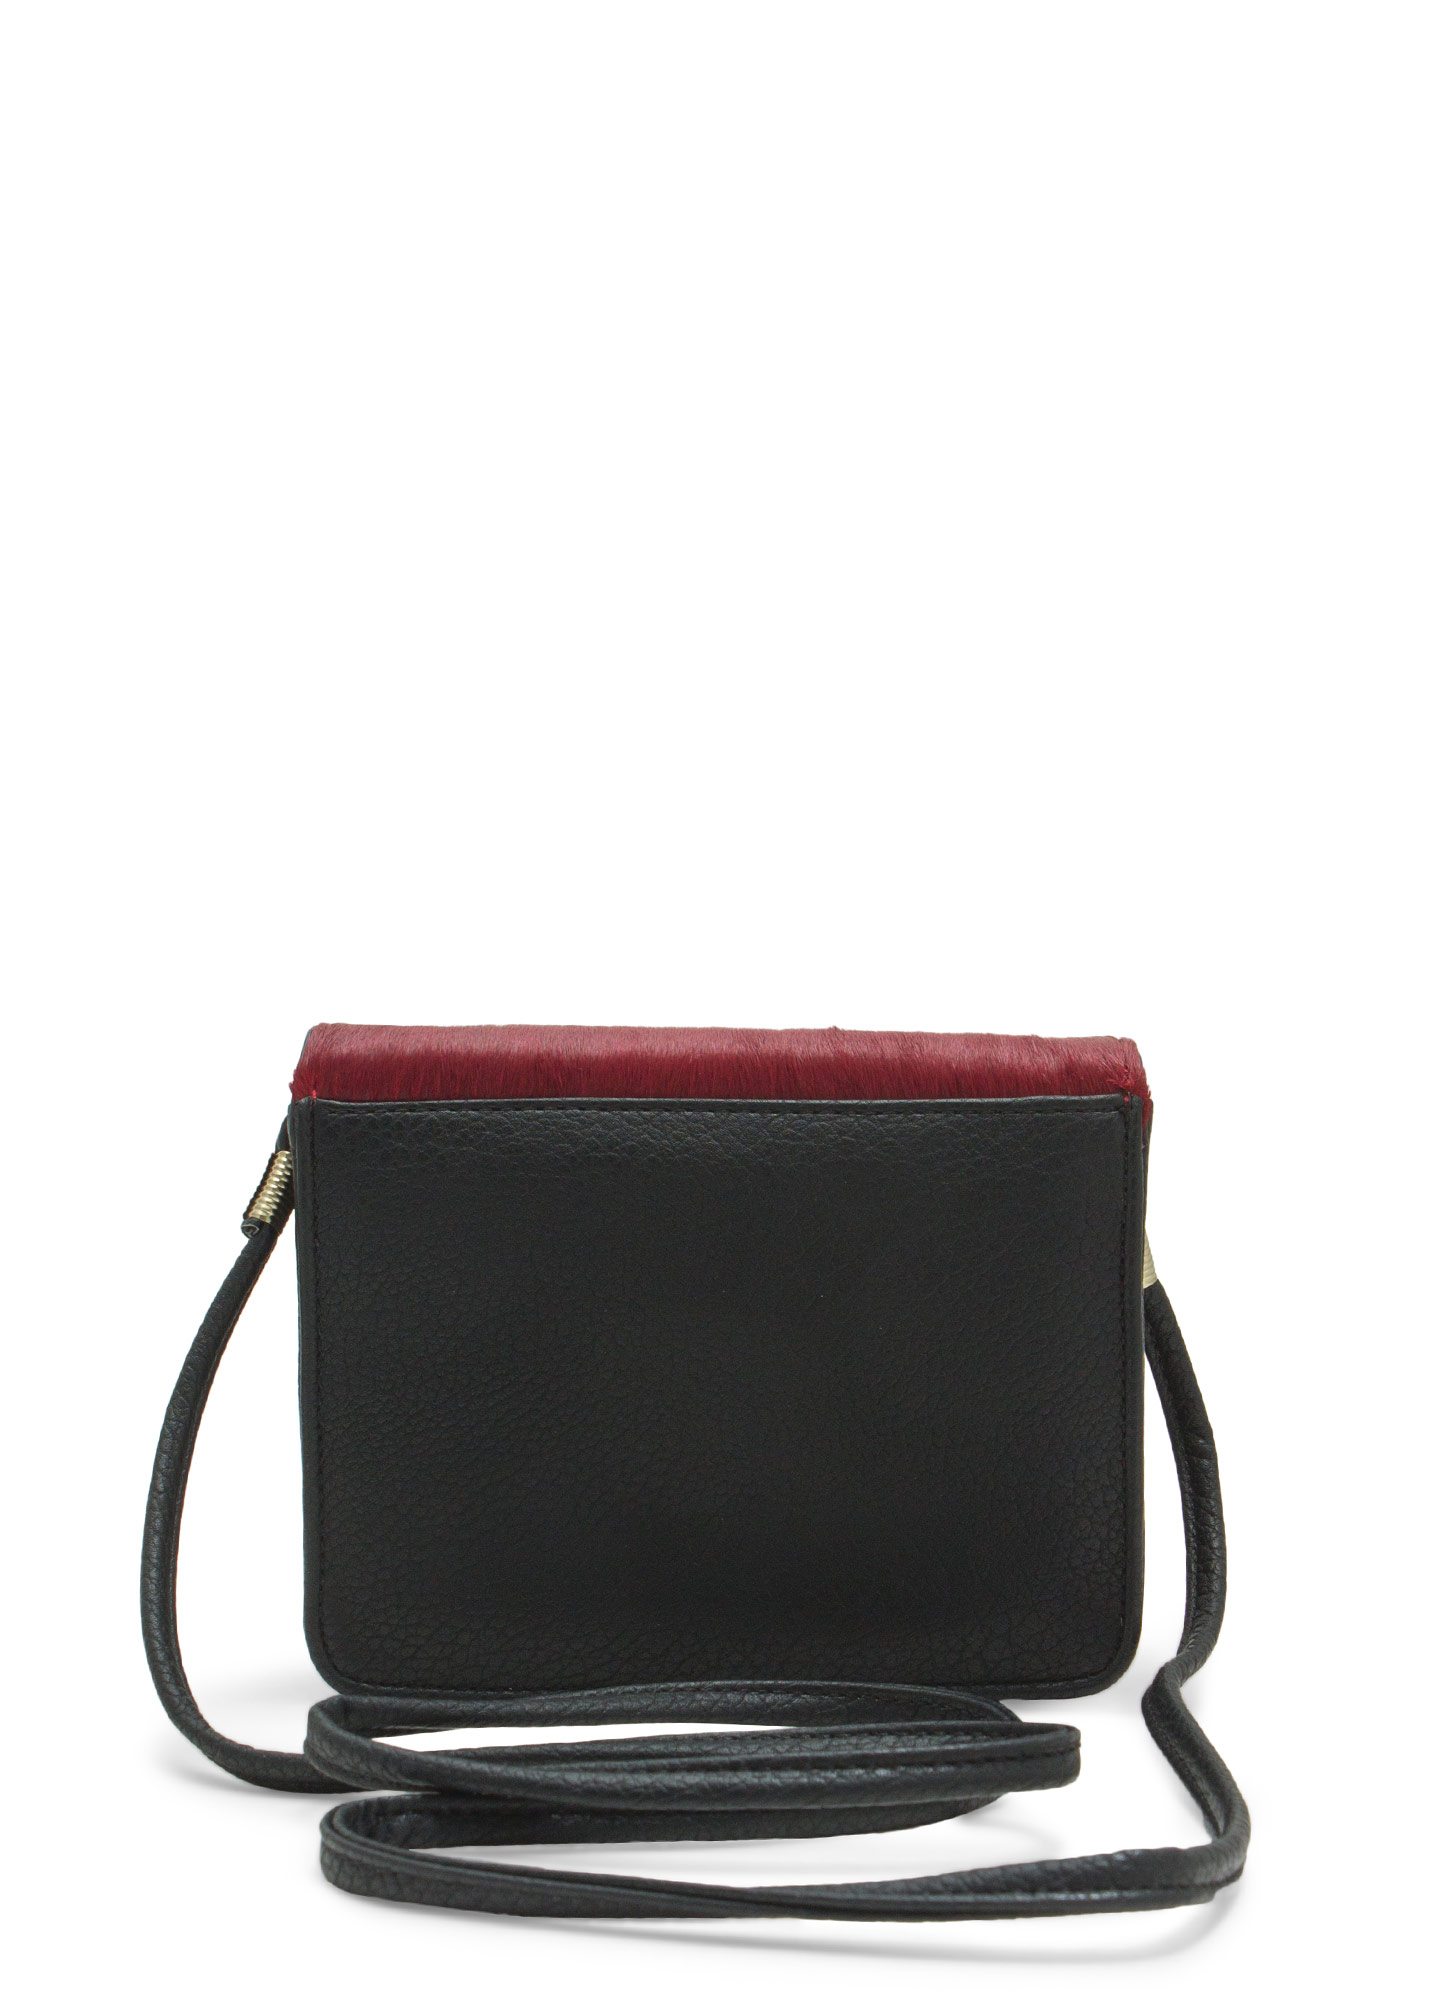 Boxy Pony Hair Clutch BURGUNDYBLK